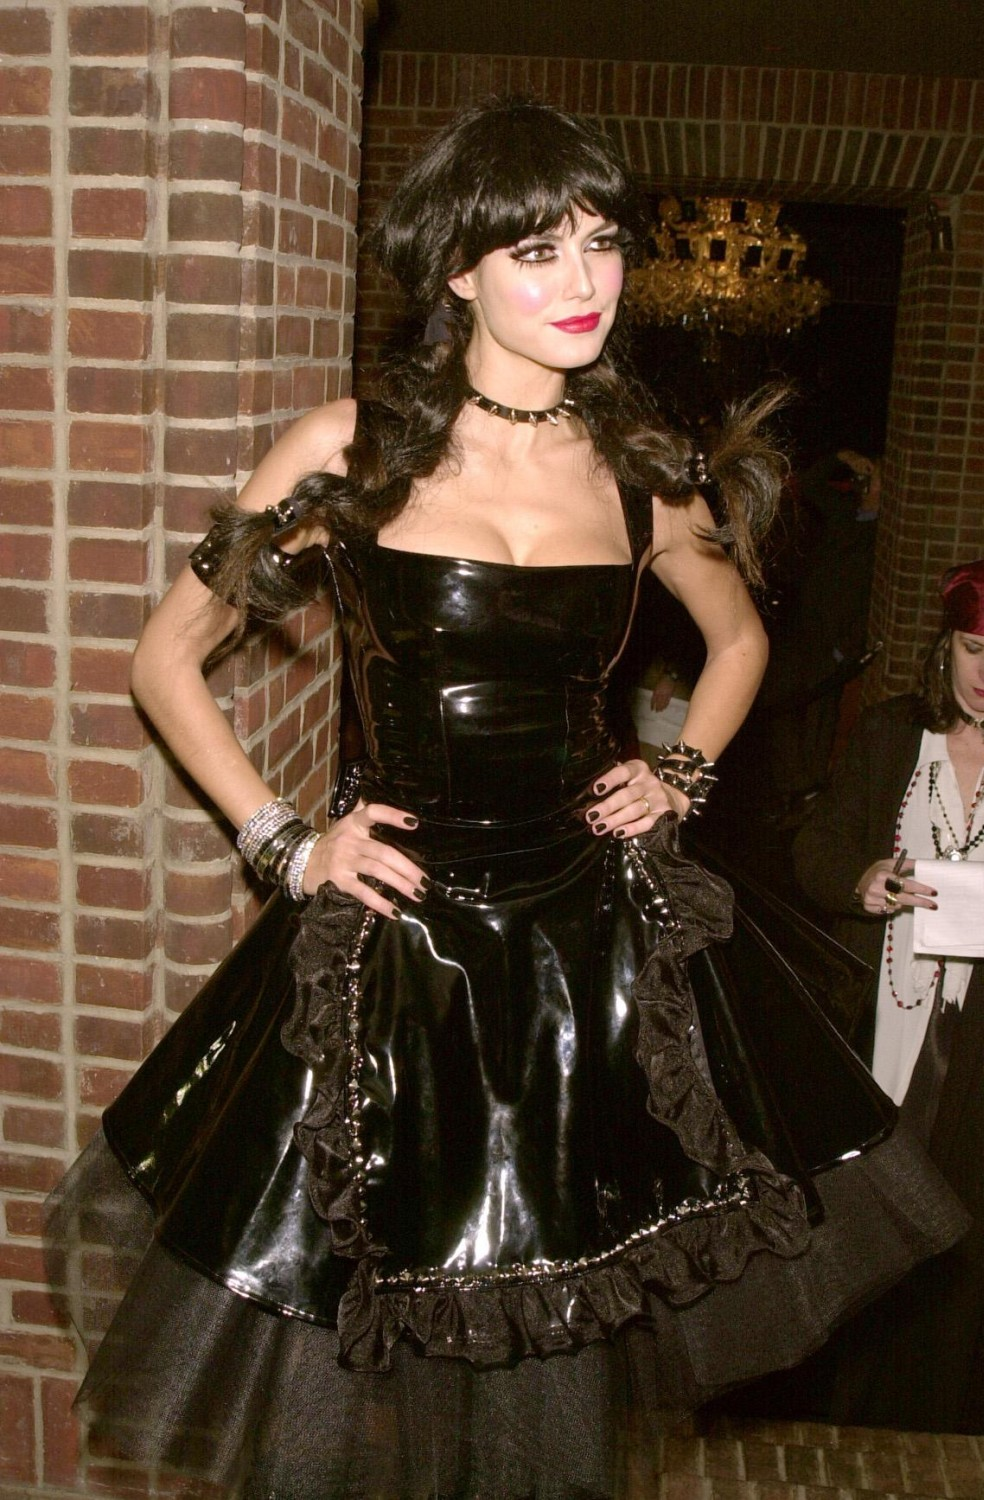 heidi klum - the queen of halloween parties - miratico